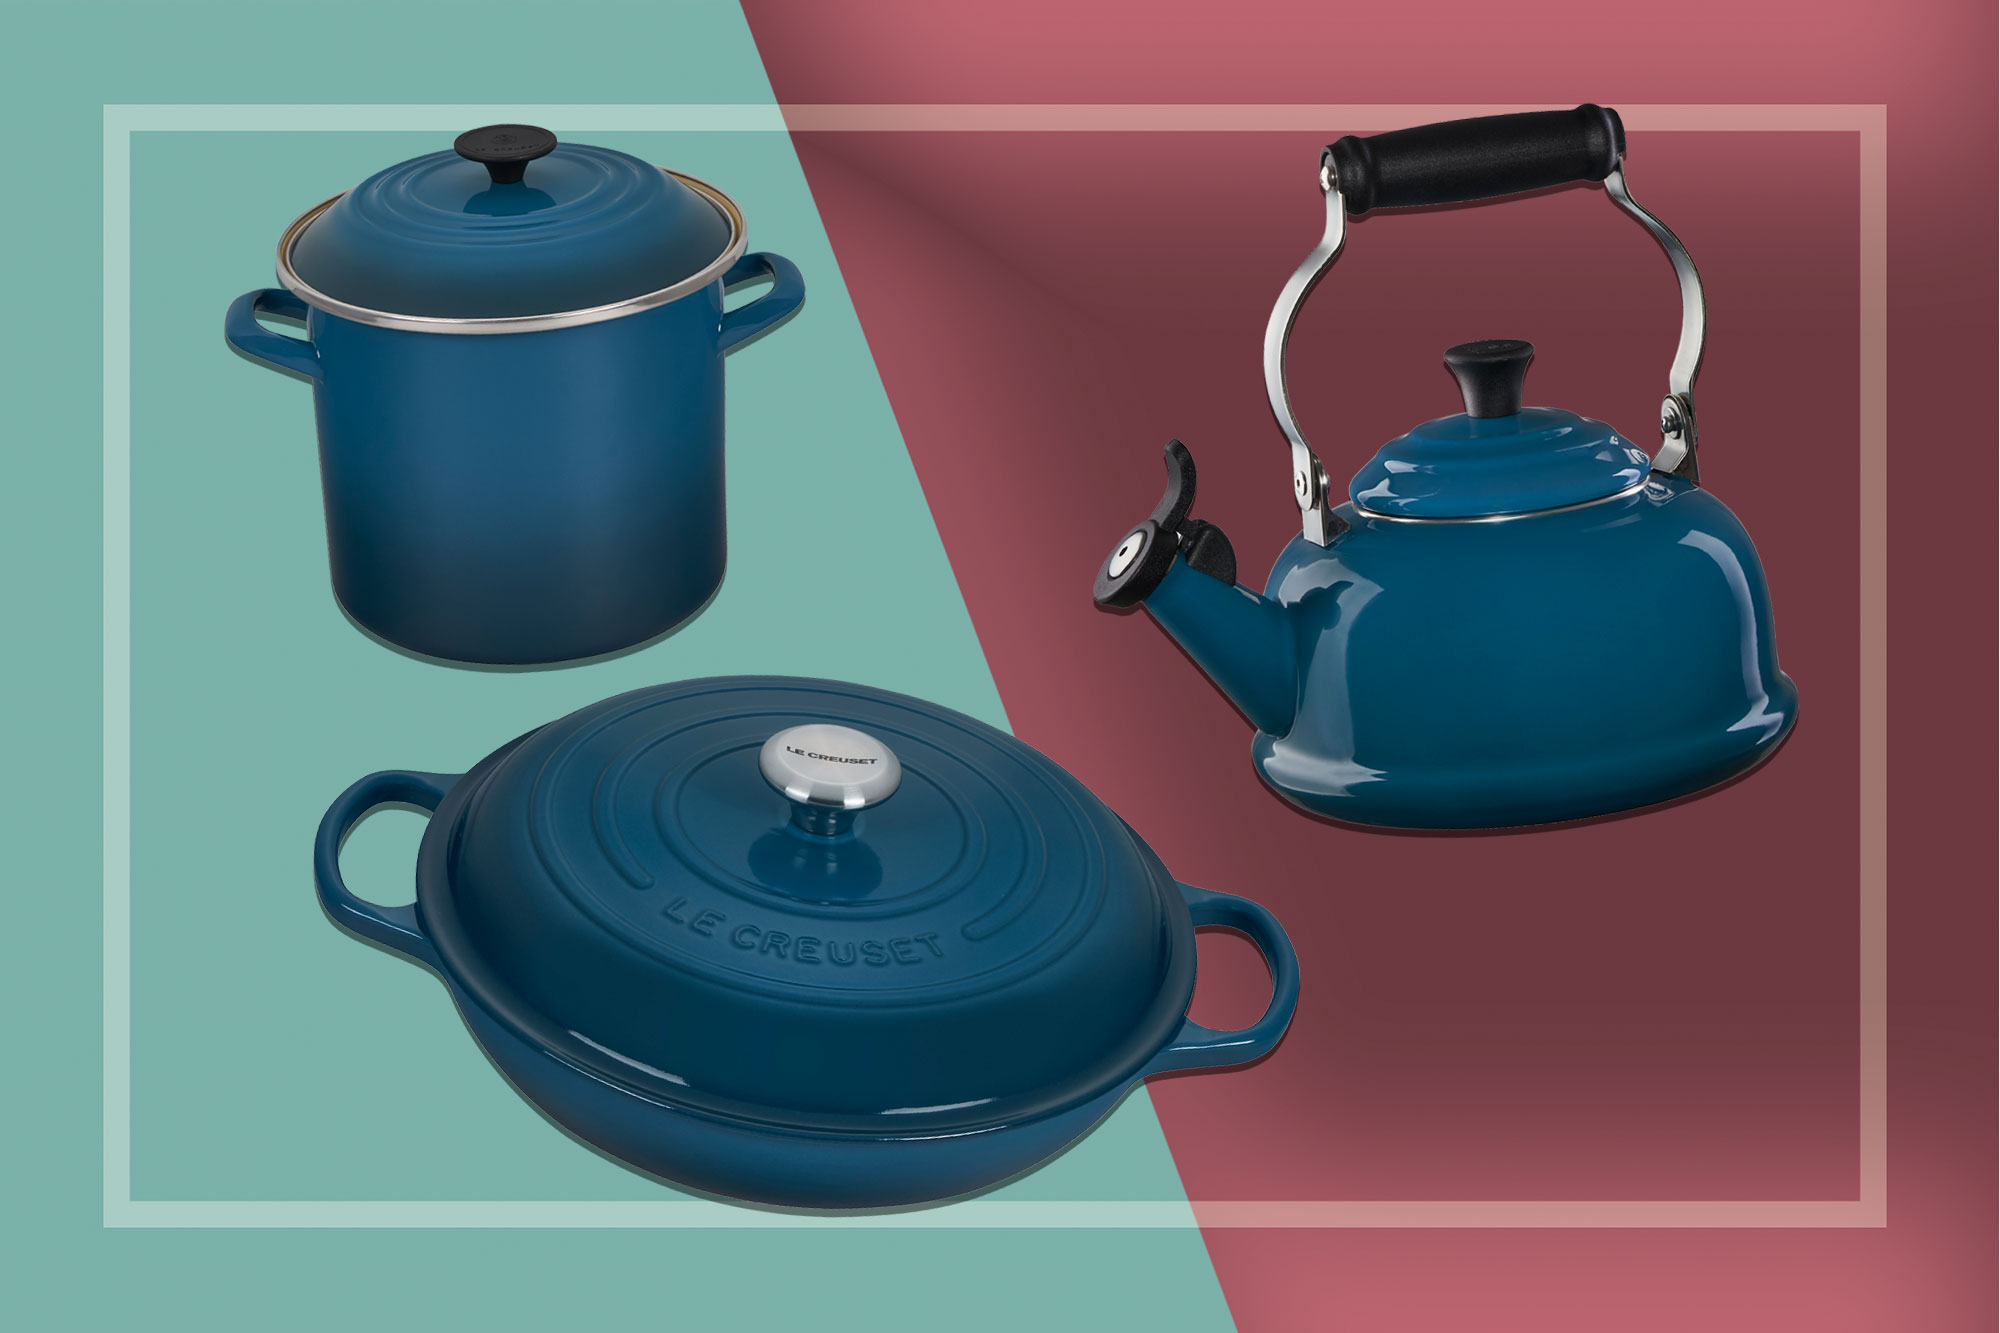 Le Creuset products in deep teal